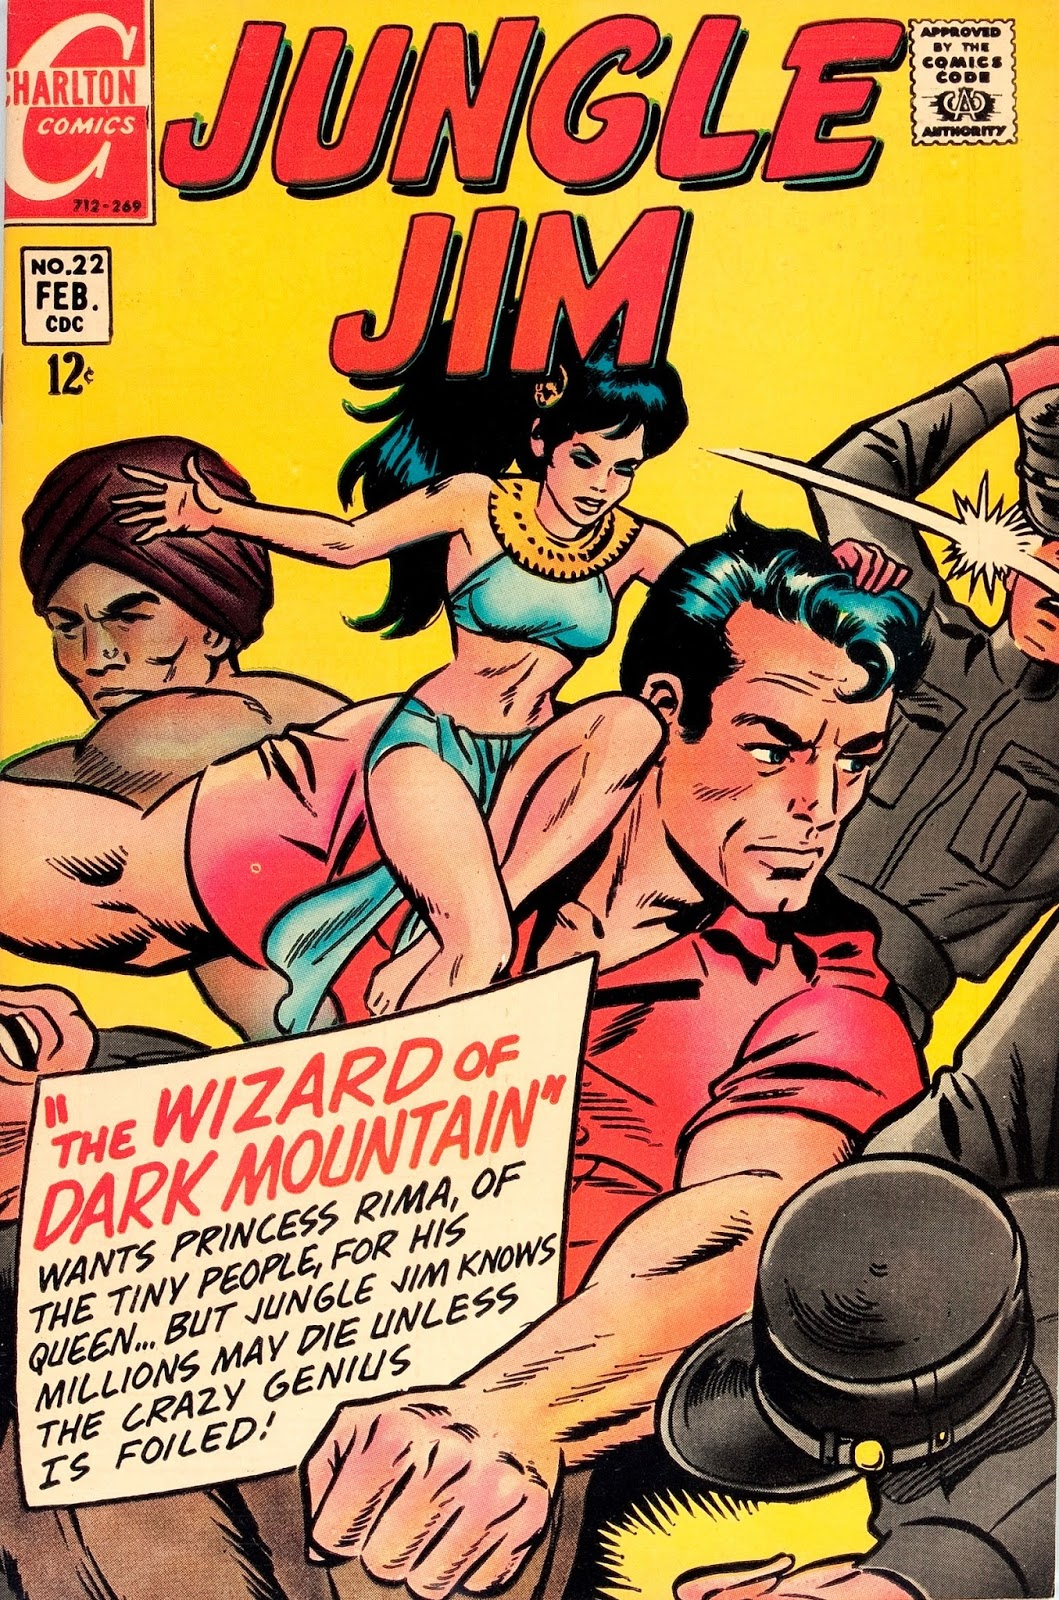 Jungle Jim #22 The witch doctor of borges island & The Wizard of Dark Mountain